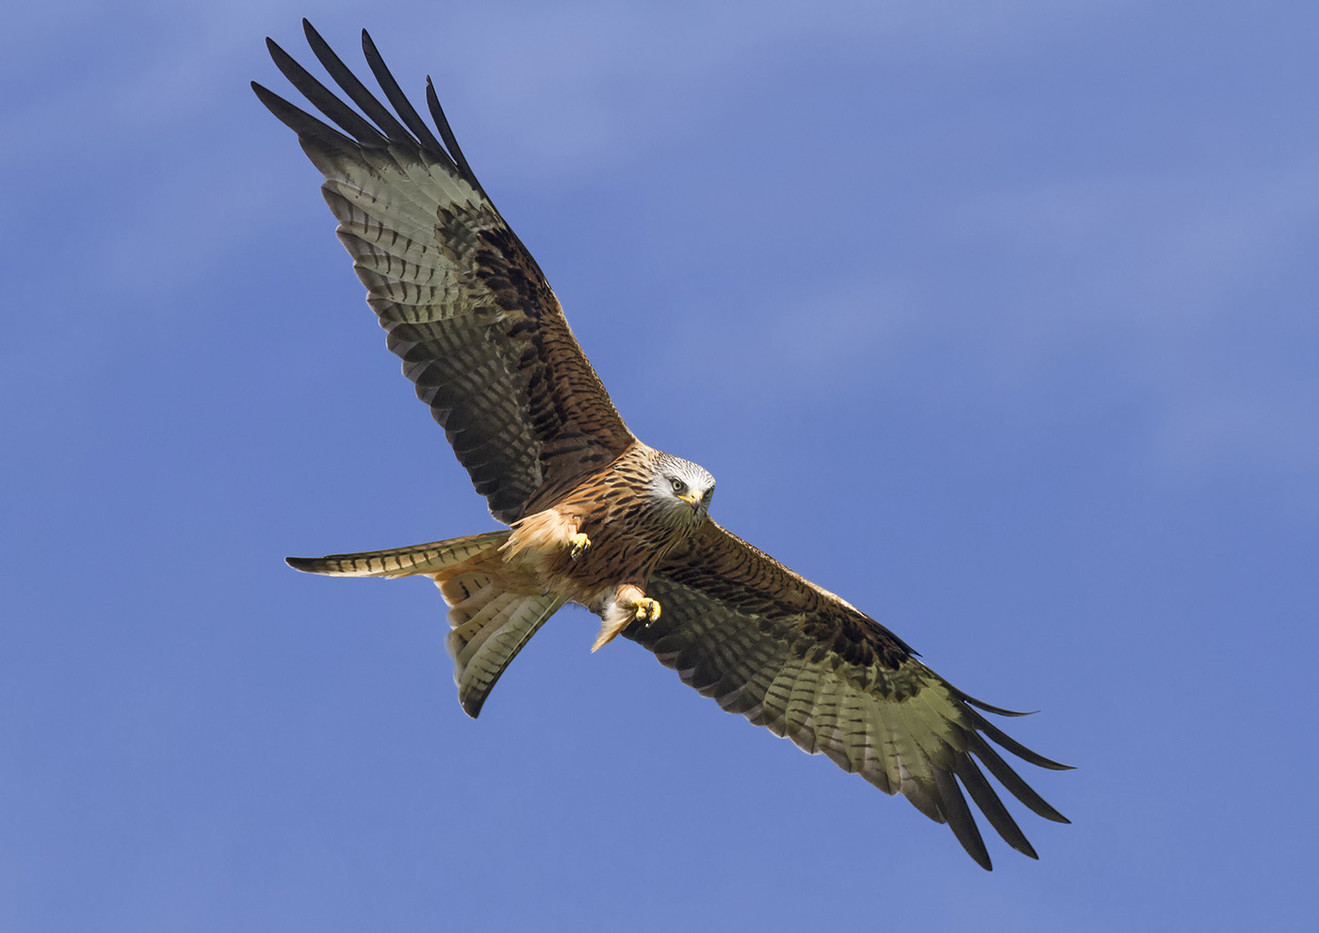 18 RED KITE COMING IN FOR THE KILL by Glenn Welch